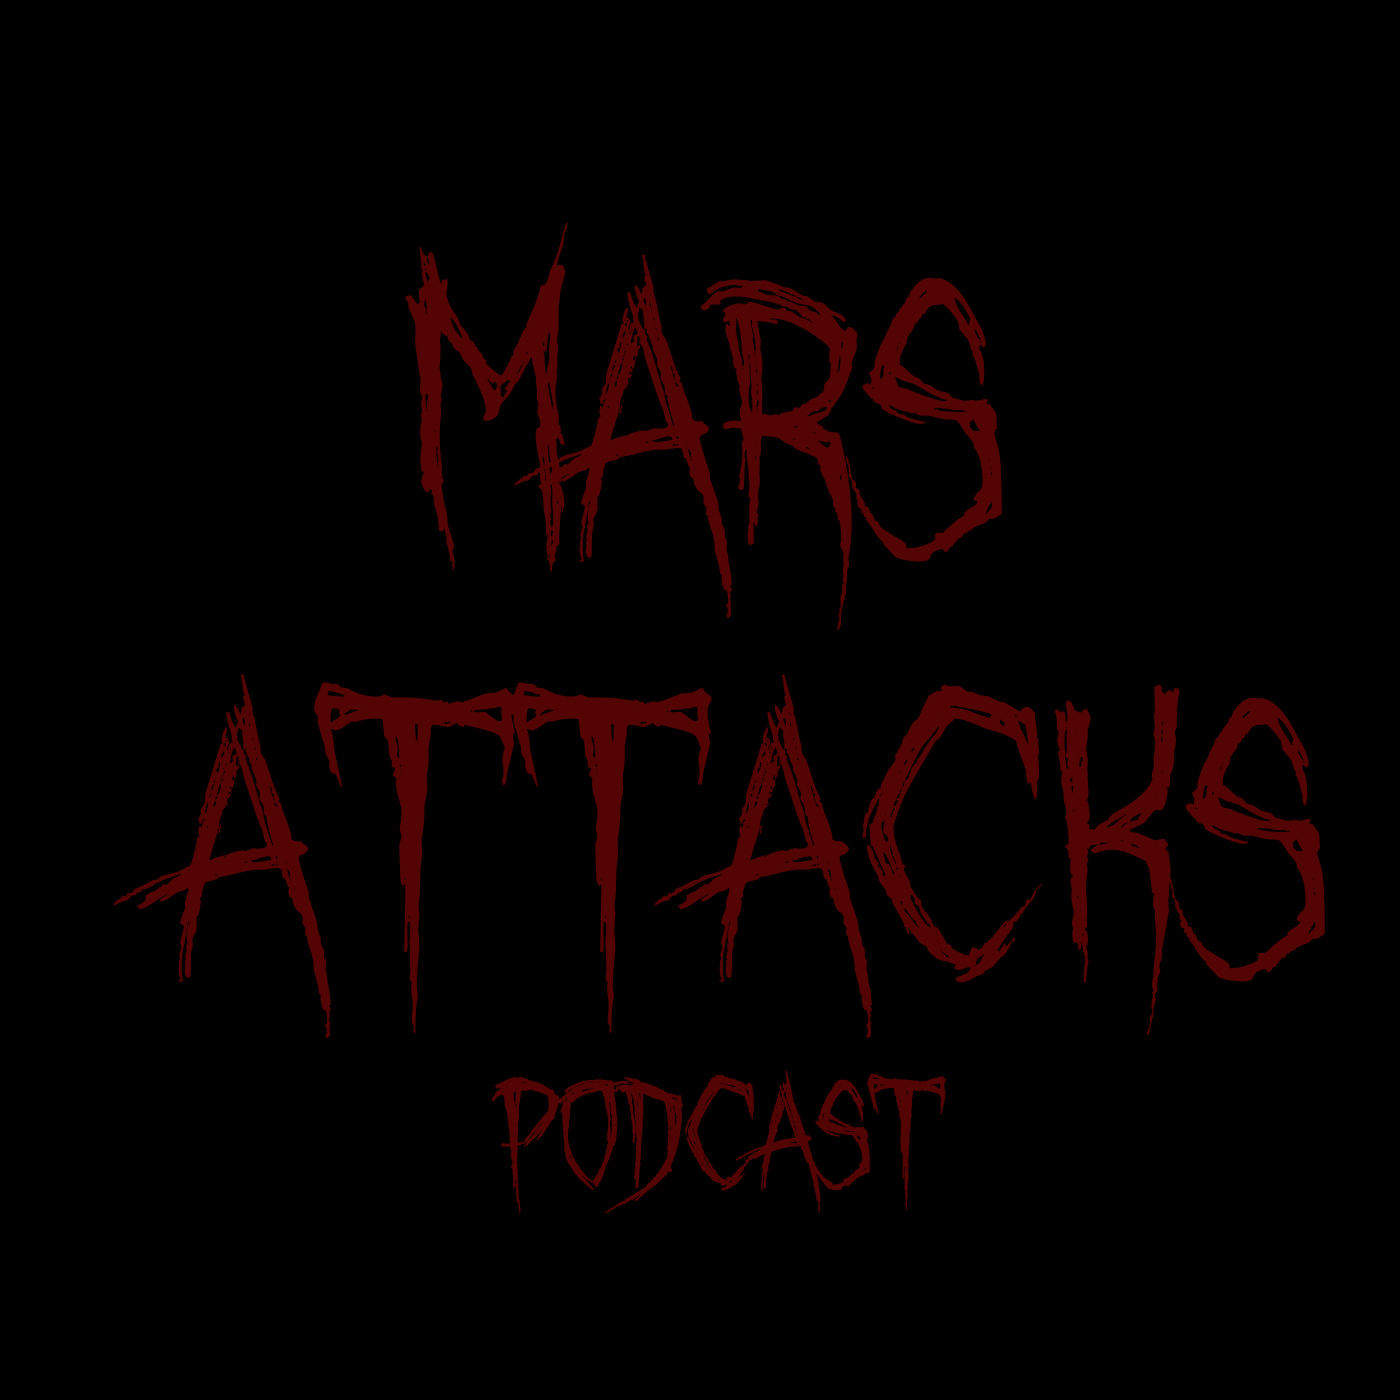 Mars Attacks Radio